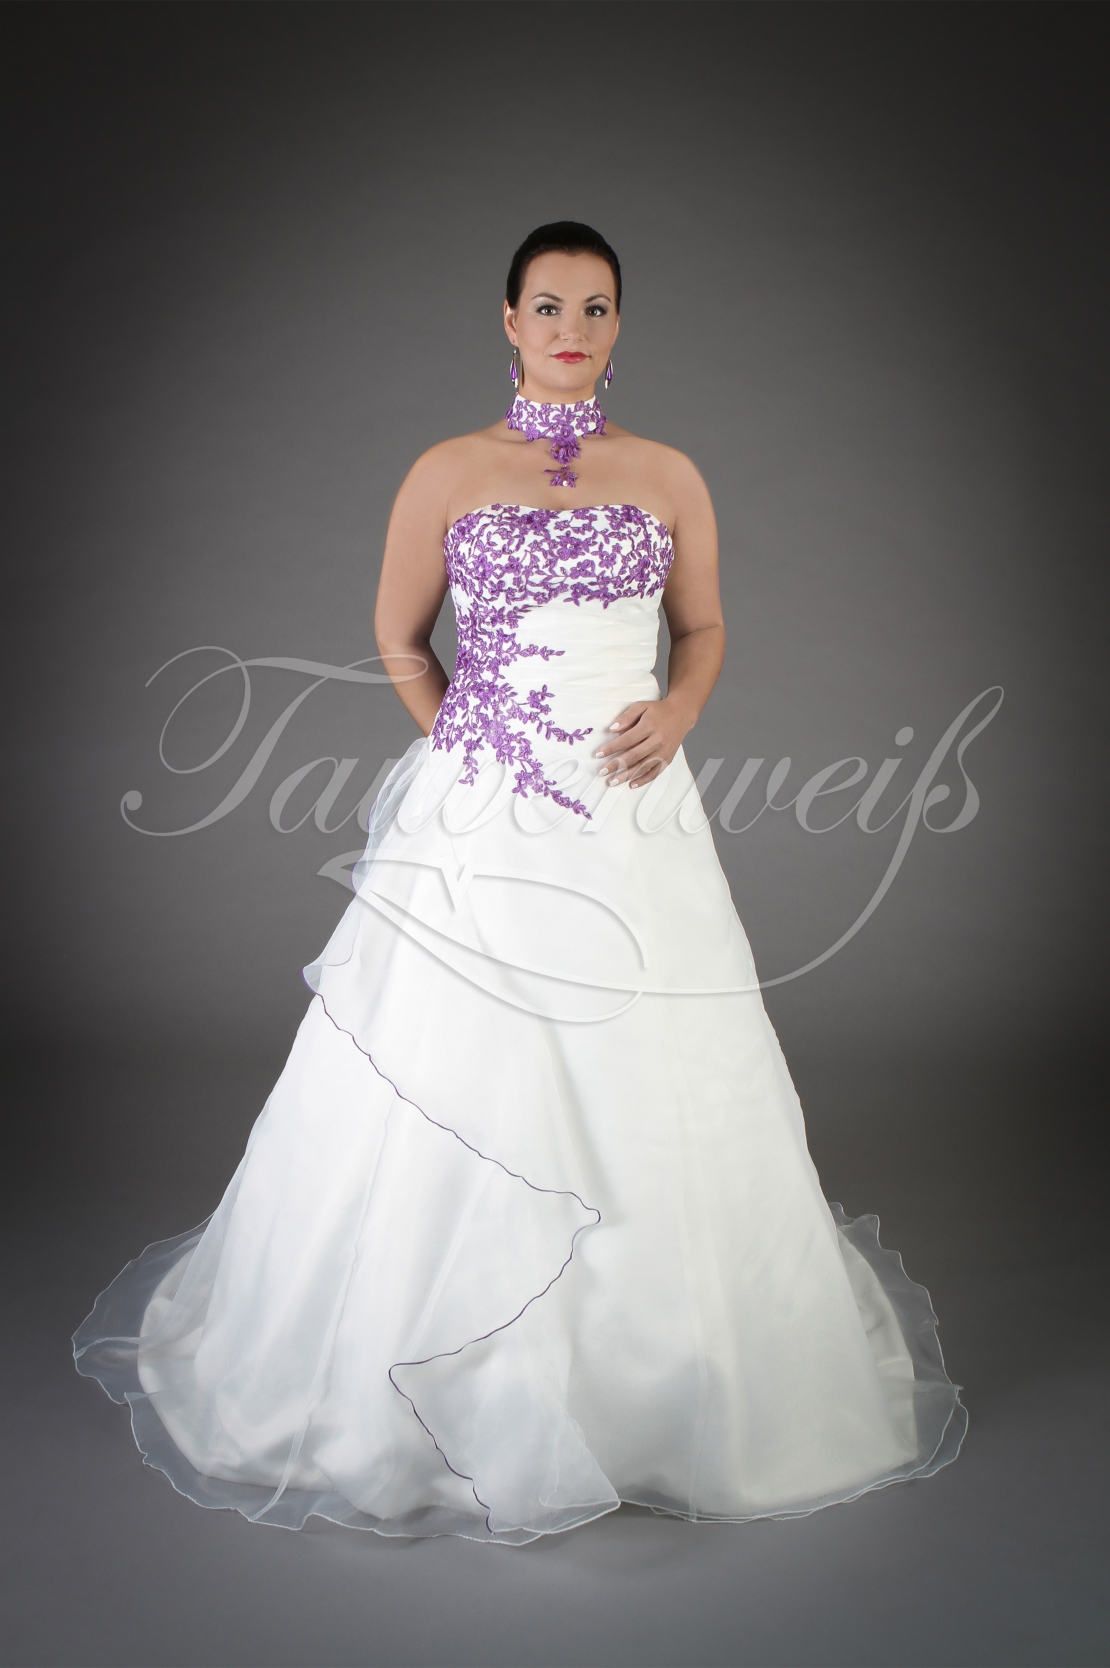 Wedding dress TW10B - Wedding dress TW10B A-Line organza purple  appliques train lace-up style necklace